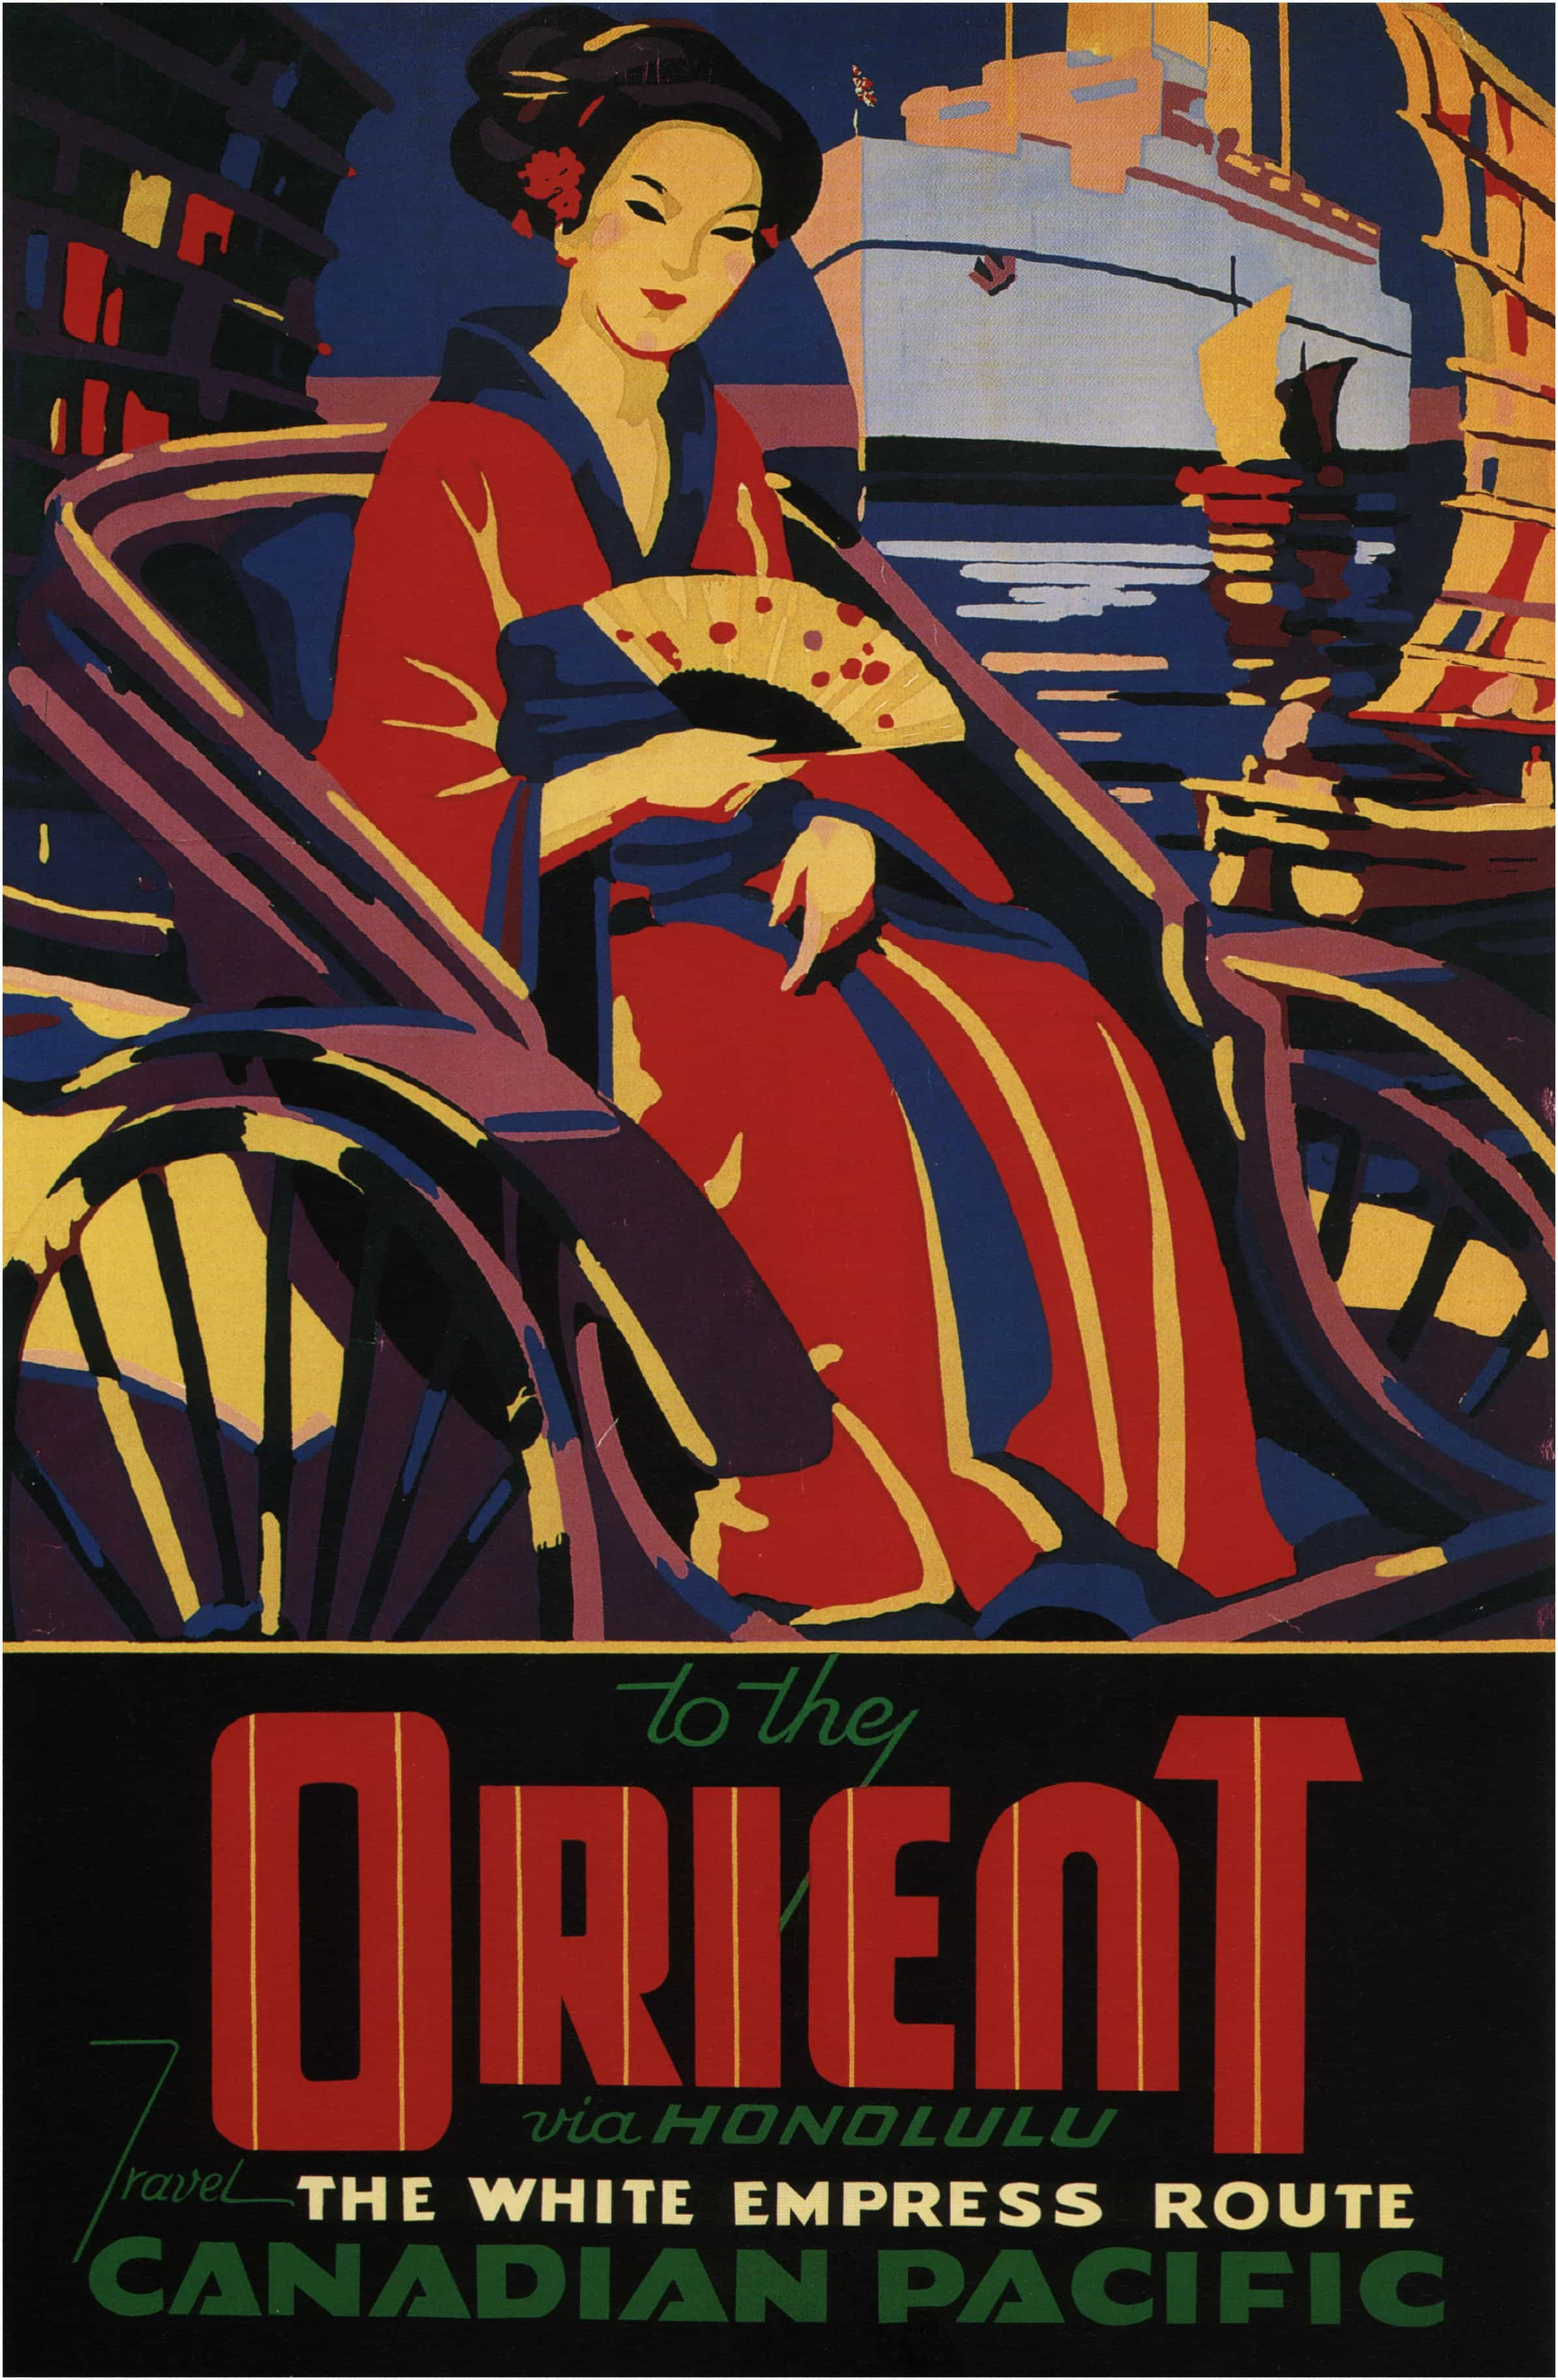 Canadian Pacific The Orient Vintage Travel Poster Print T196 A4 A3 A2 A1 A0|